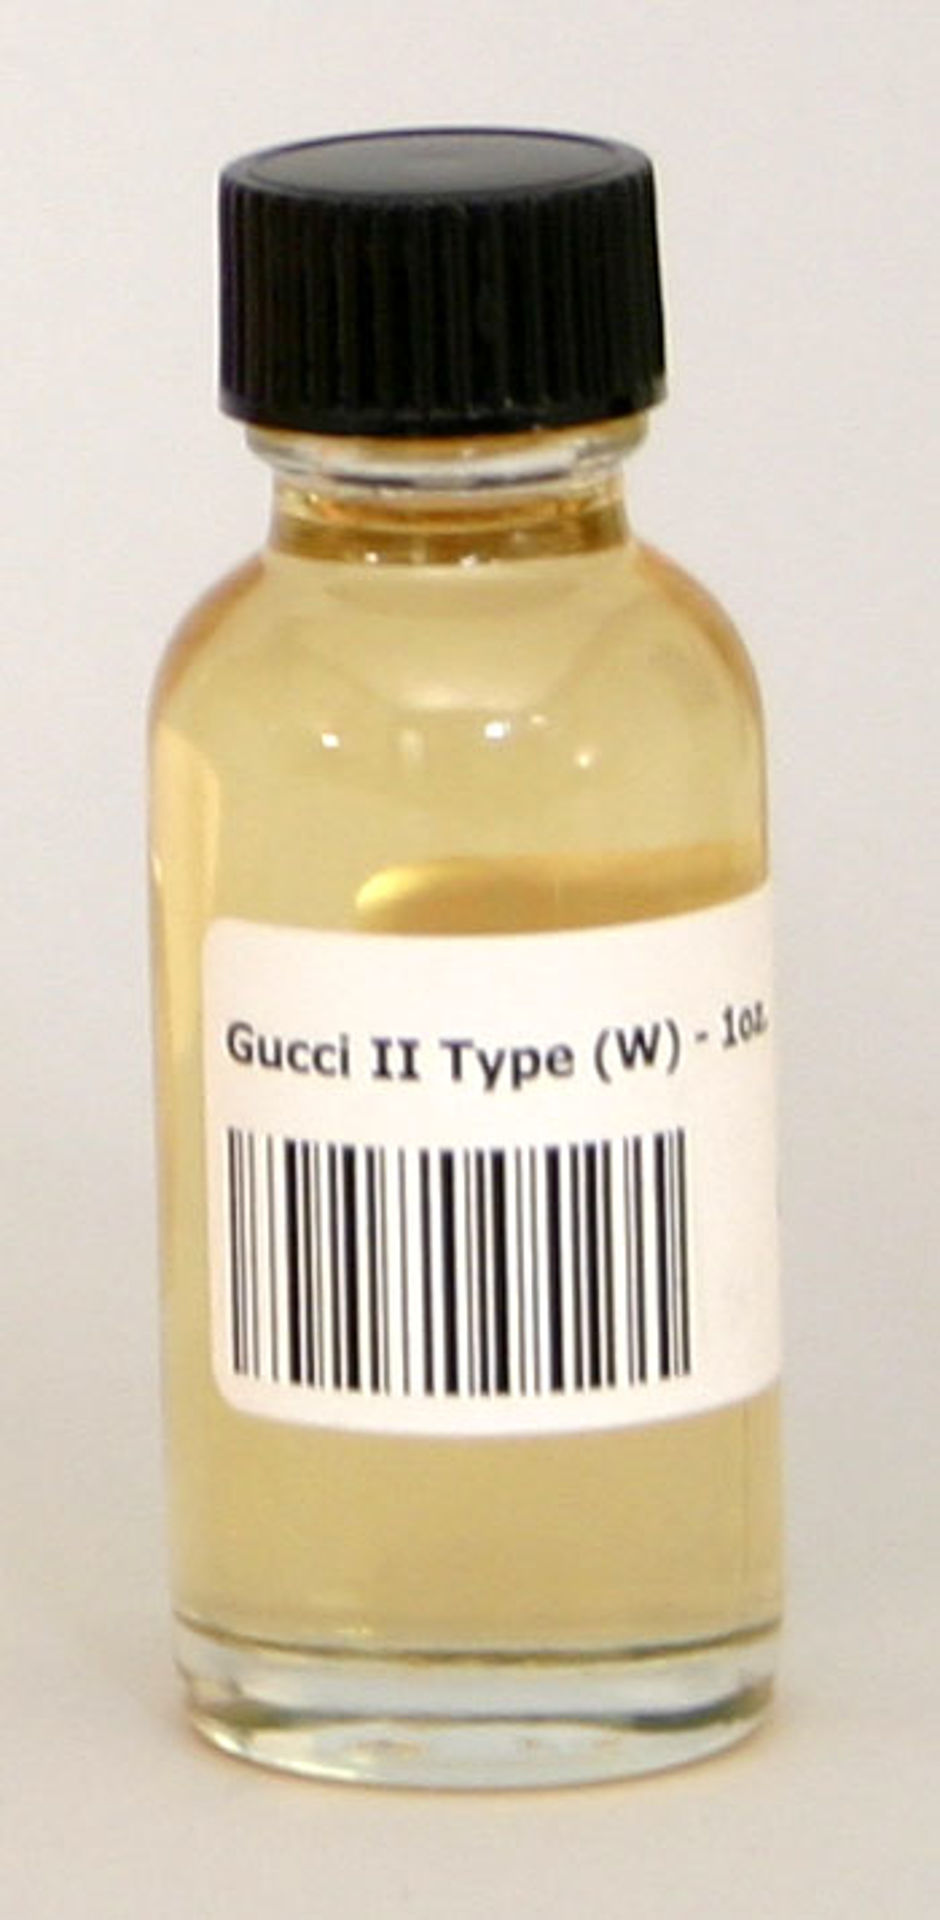 Picture of Gucci II (W) Type - 1 oz.